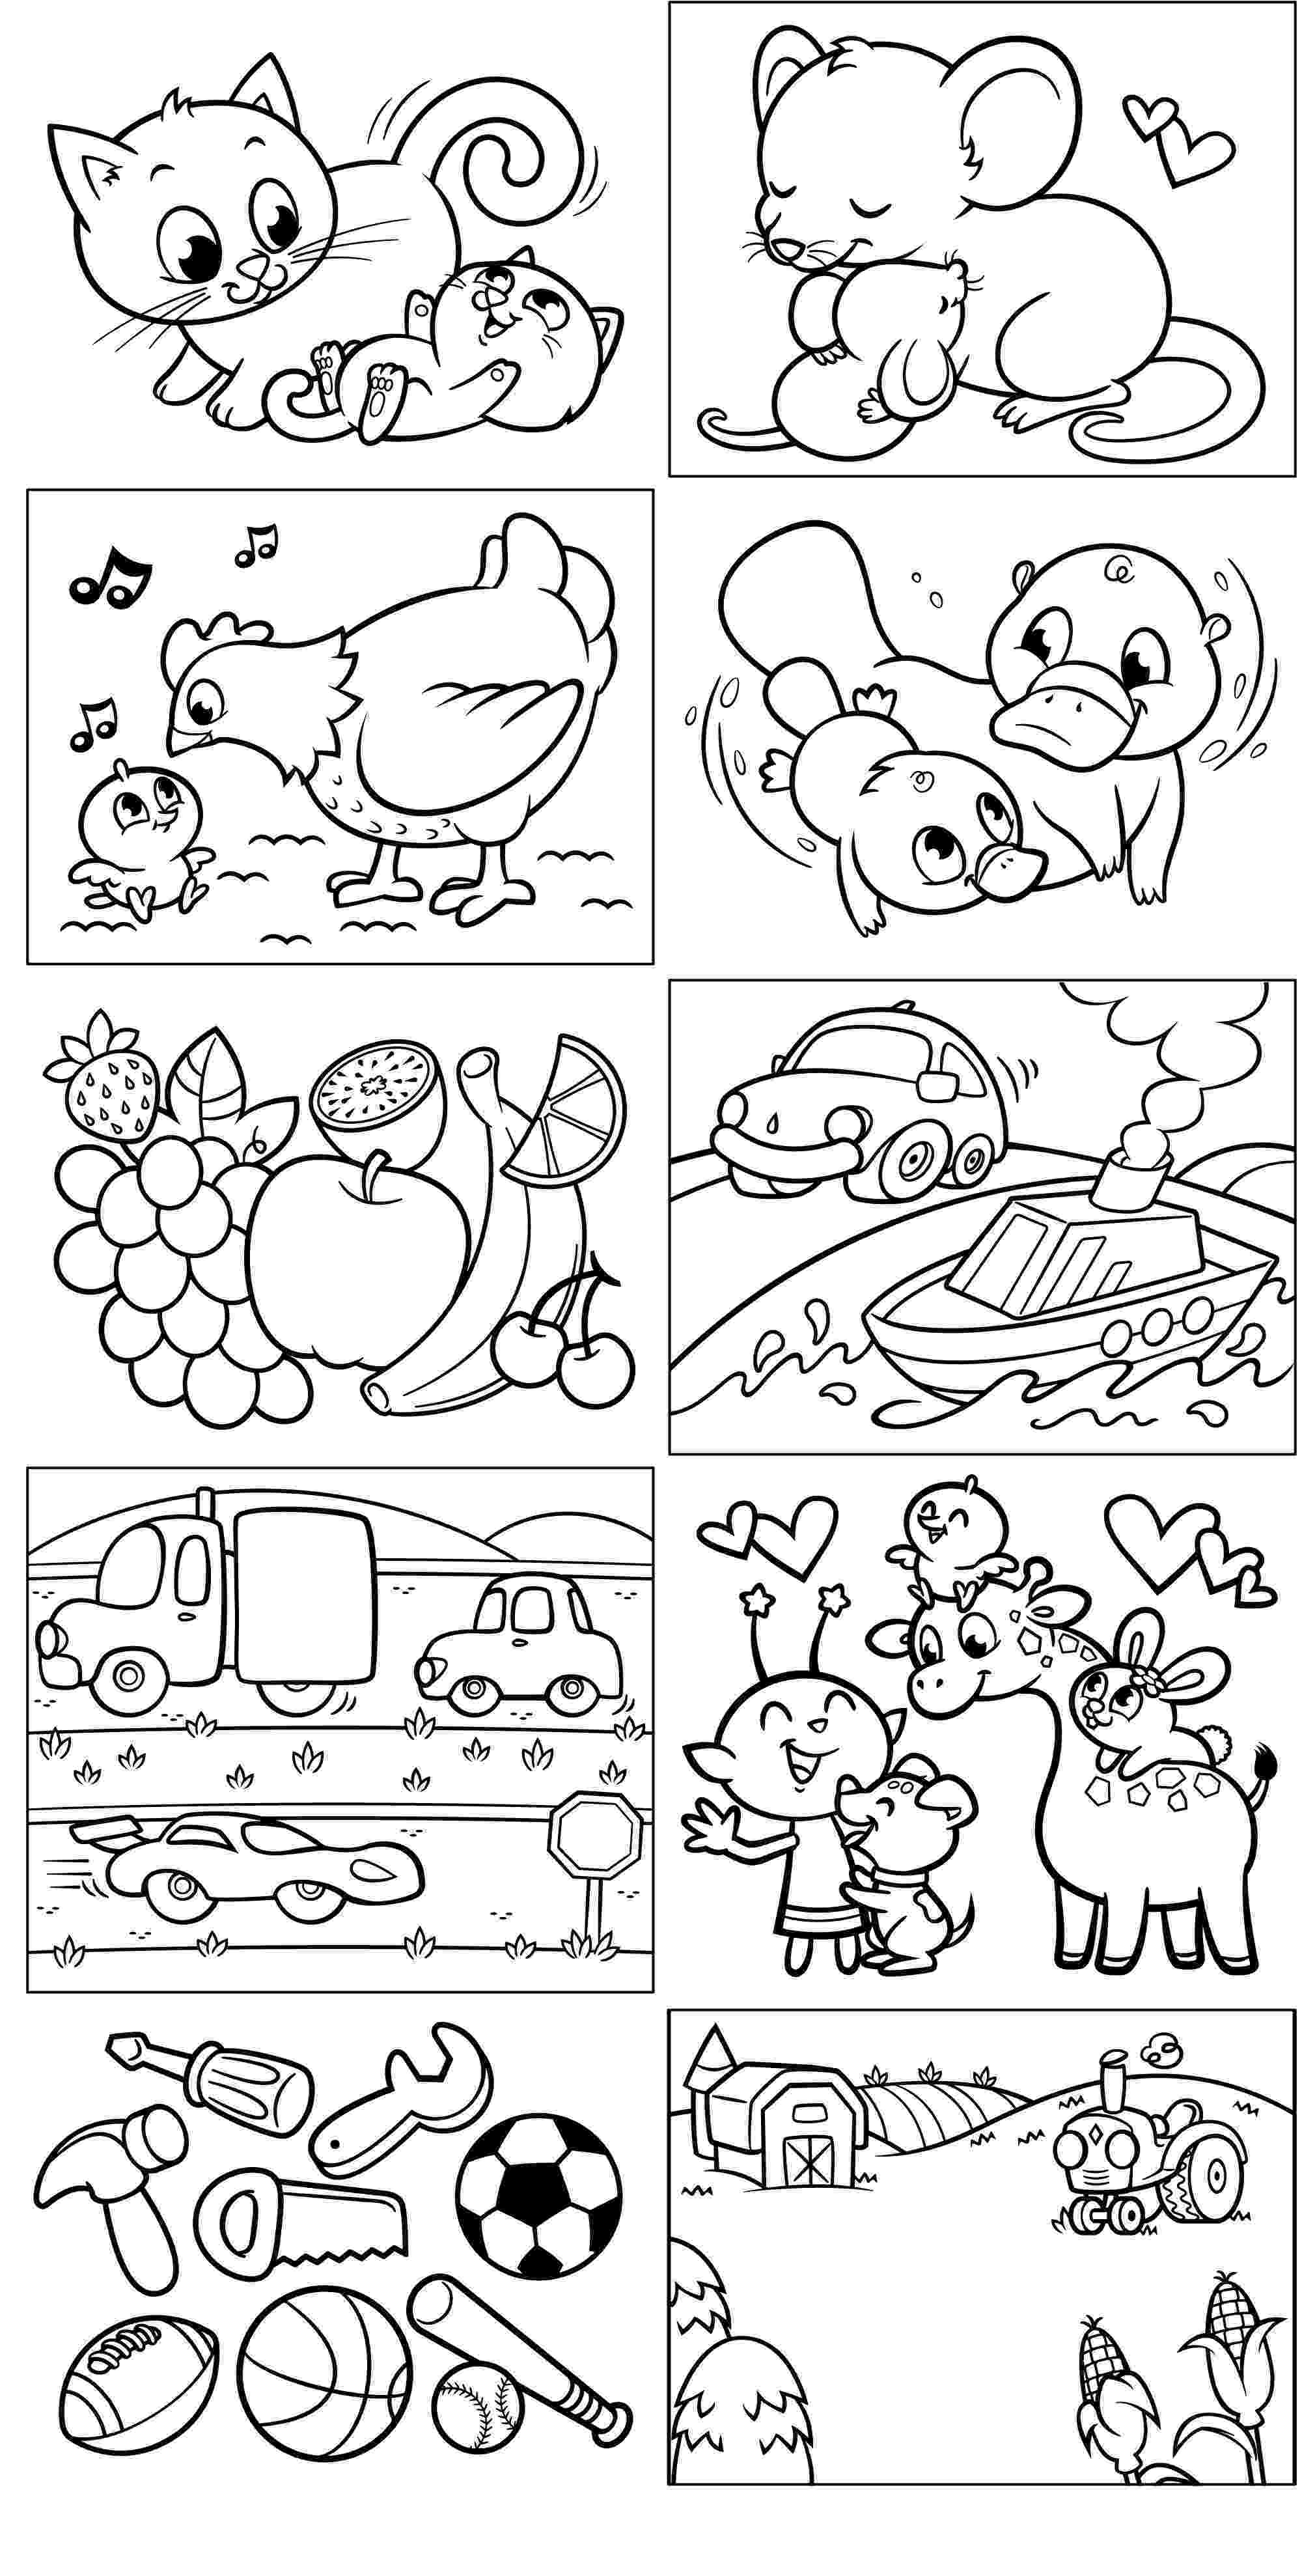 popular coloring pages cookie monster coloring pages to download and print for free pages popular coloring